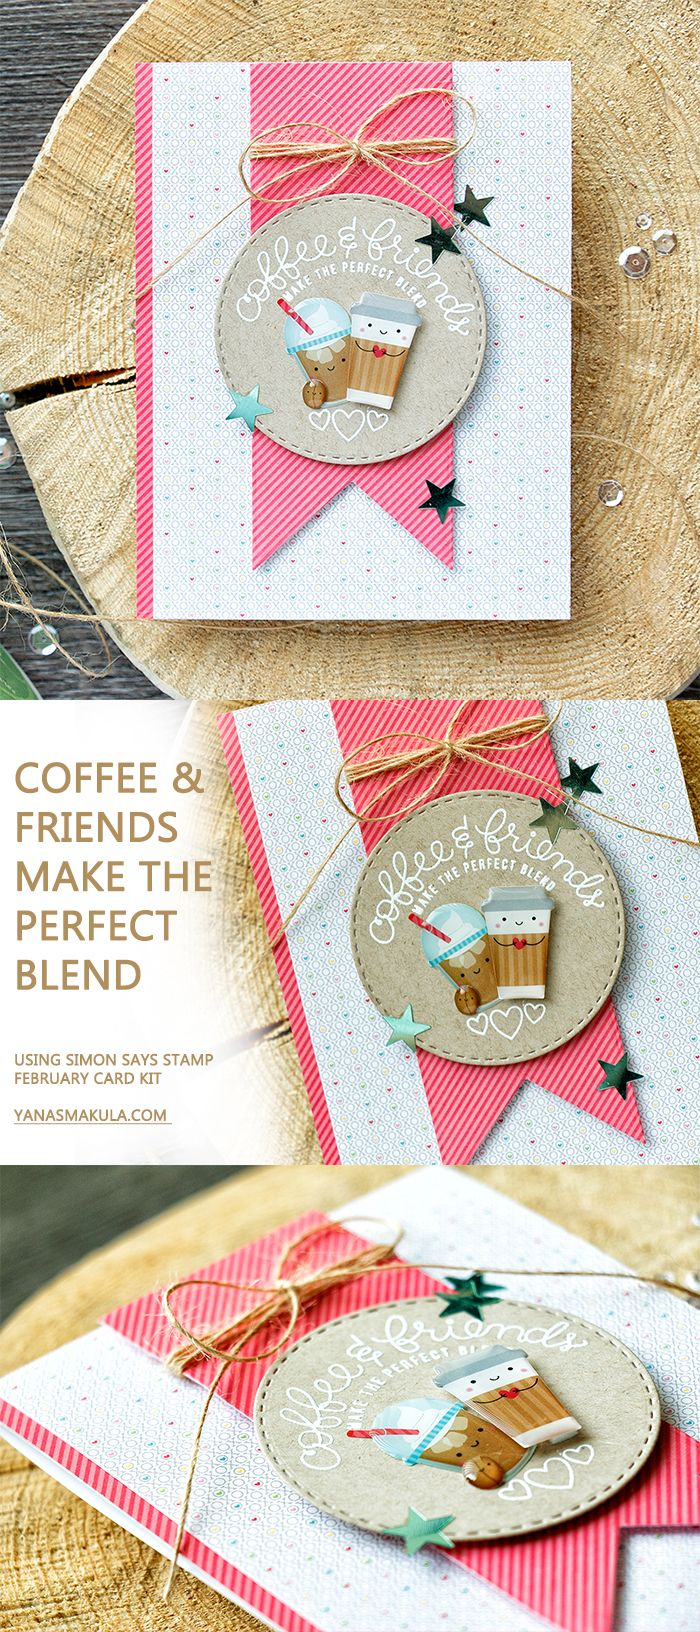 Simon Says Stamp - February 2017 Card Kit. Coffee & Friends make the perfect blend.